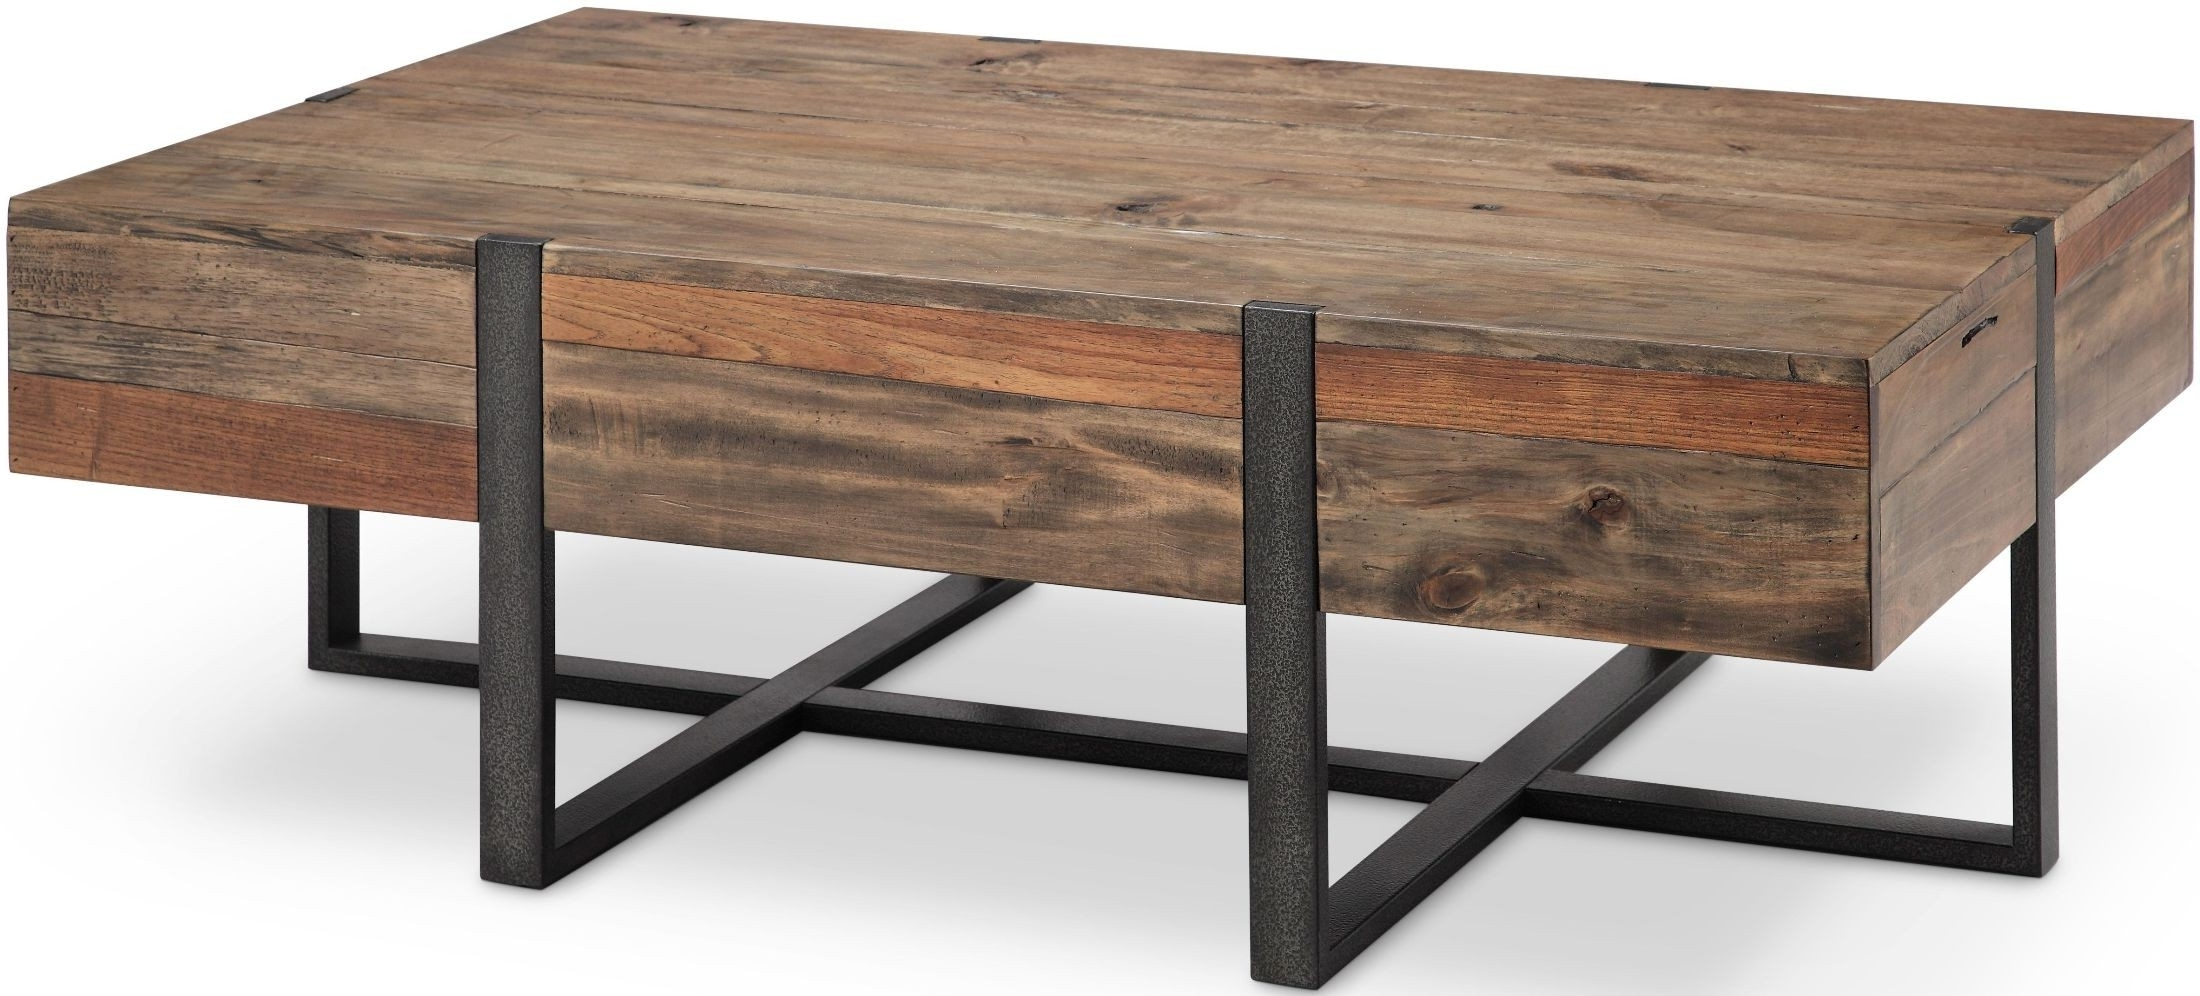 2017 Prescott Cocktail Tables Intended For Prescott Rustic Honey Large Rectangular Cocktail Table From (View 1 of 20)